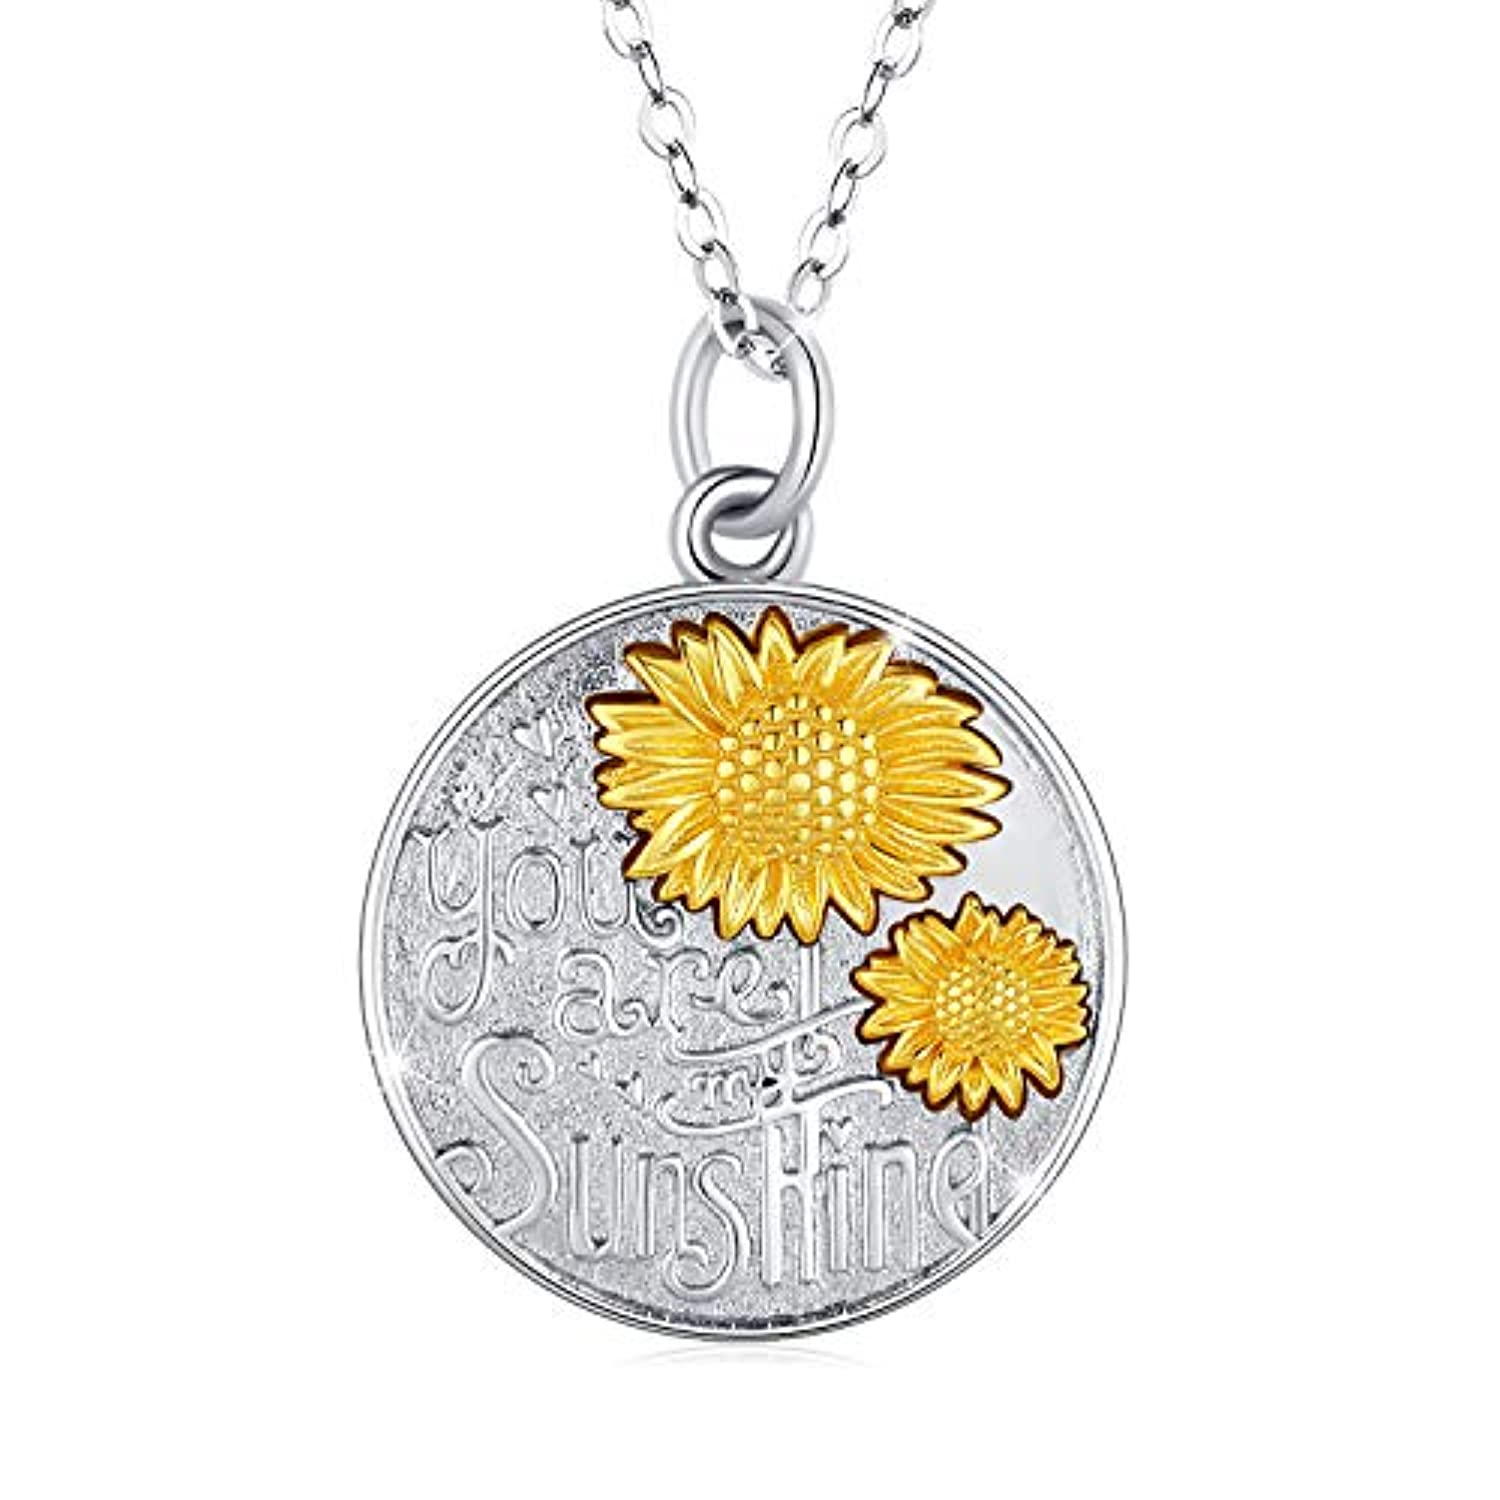 SUNNY Day Unisex Sterling Silver Alphabet Pendant Necklace s925 Necklace Jewelry